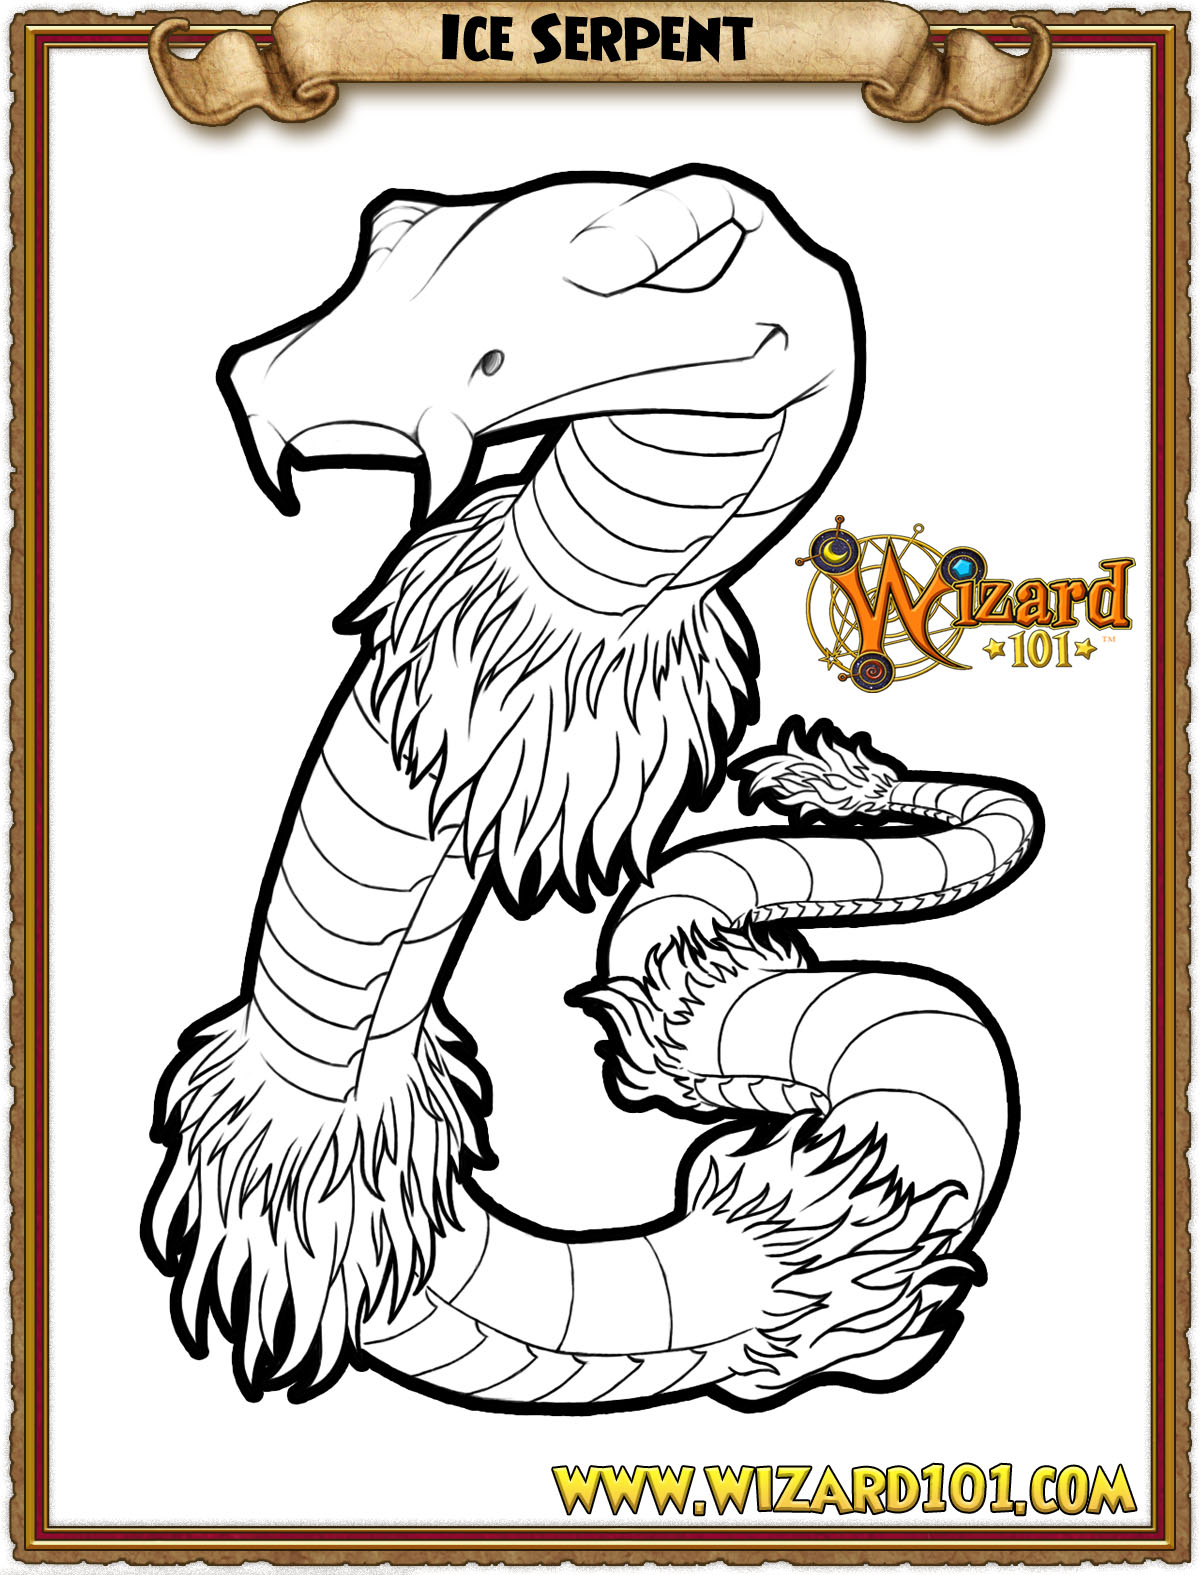 Coloring pages zoey 101 - 101 Dalmatians With Food Coloring Page